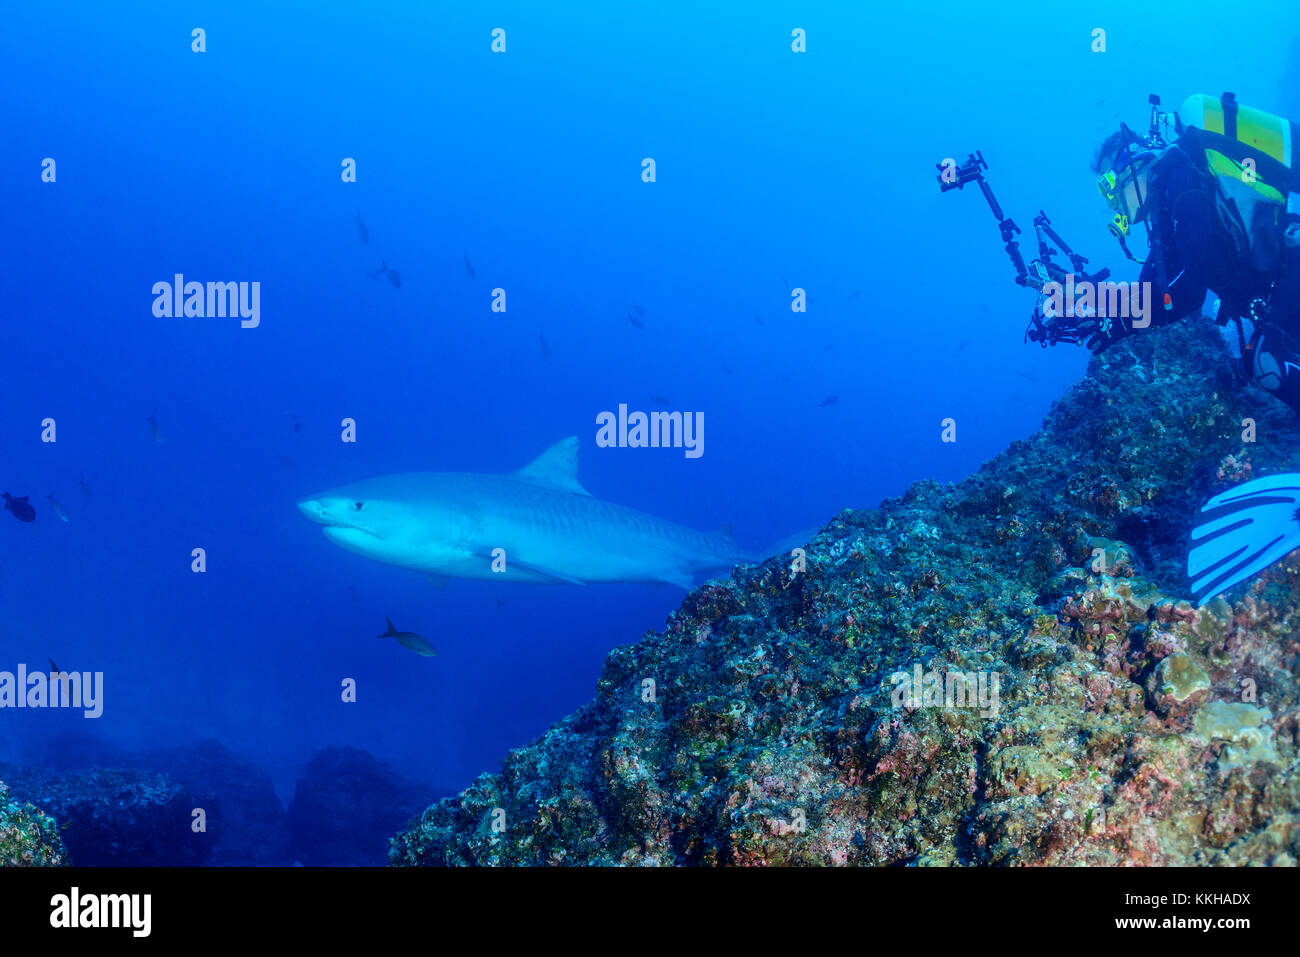 Galeocerdo cuvier, Tiger shark and scuba diver with underwater camera, Cocos Island, Costa Rica, Pacific Ocean - Stock Image